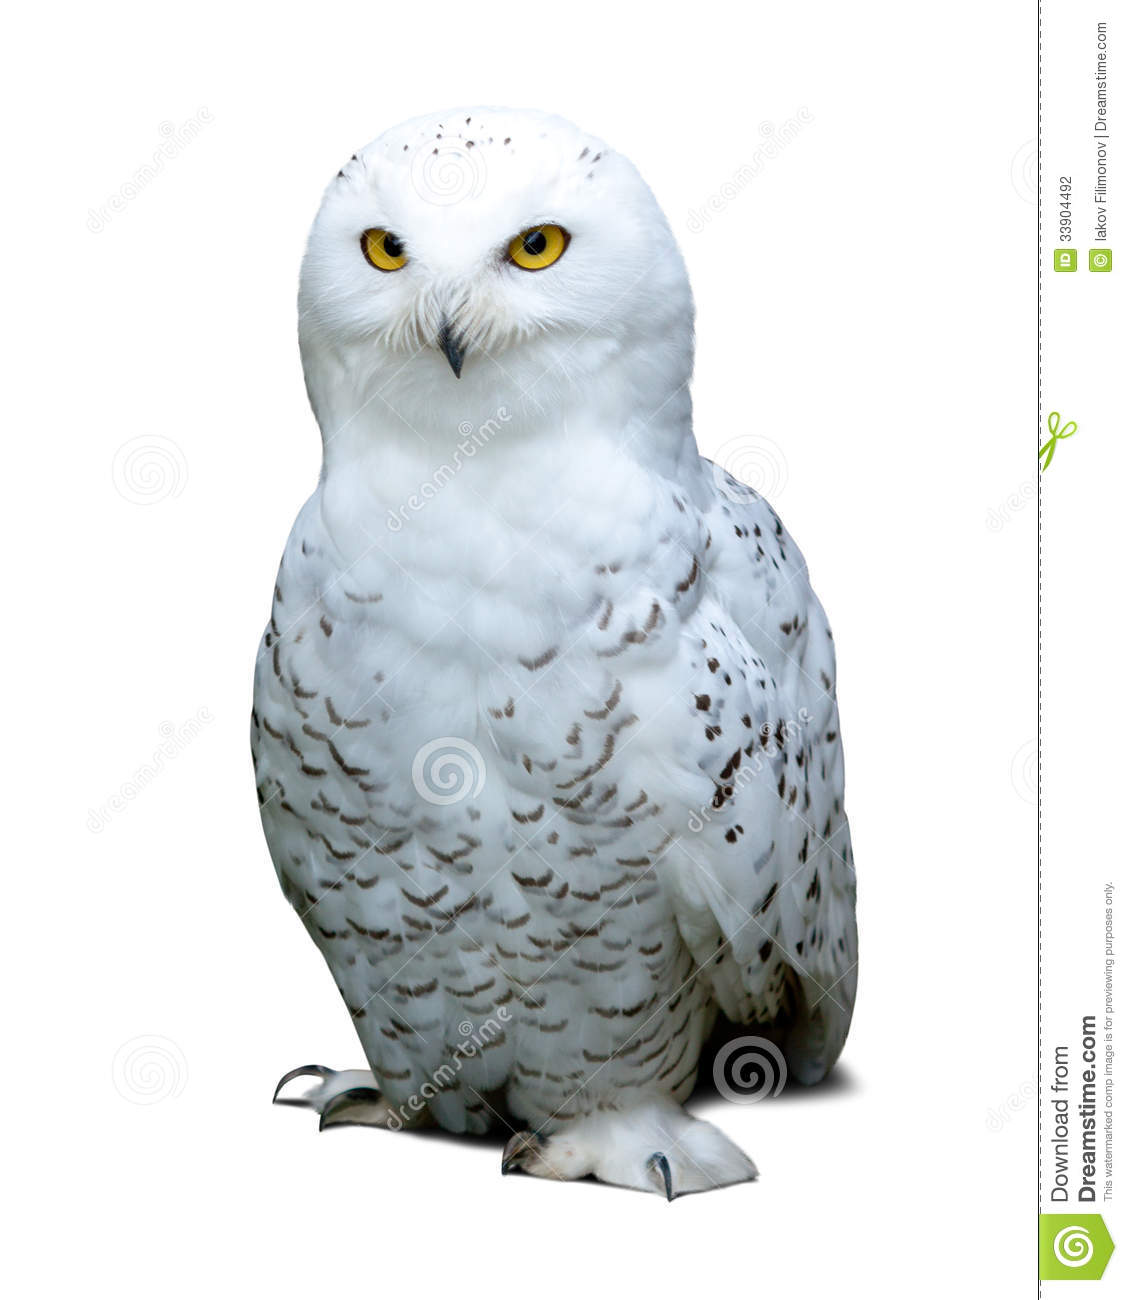 Snowy Owl Over White Stock Photography - Image: 33904492